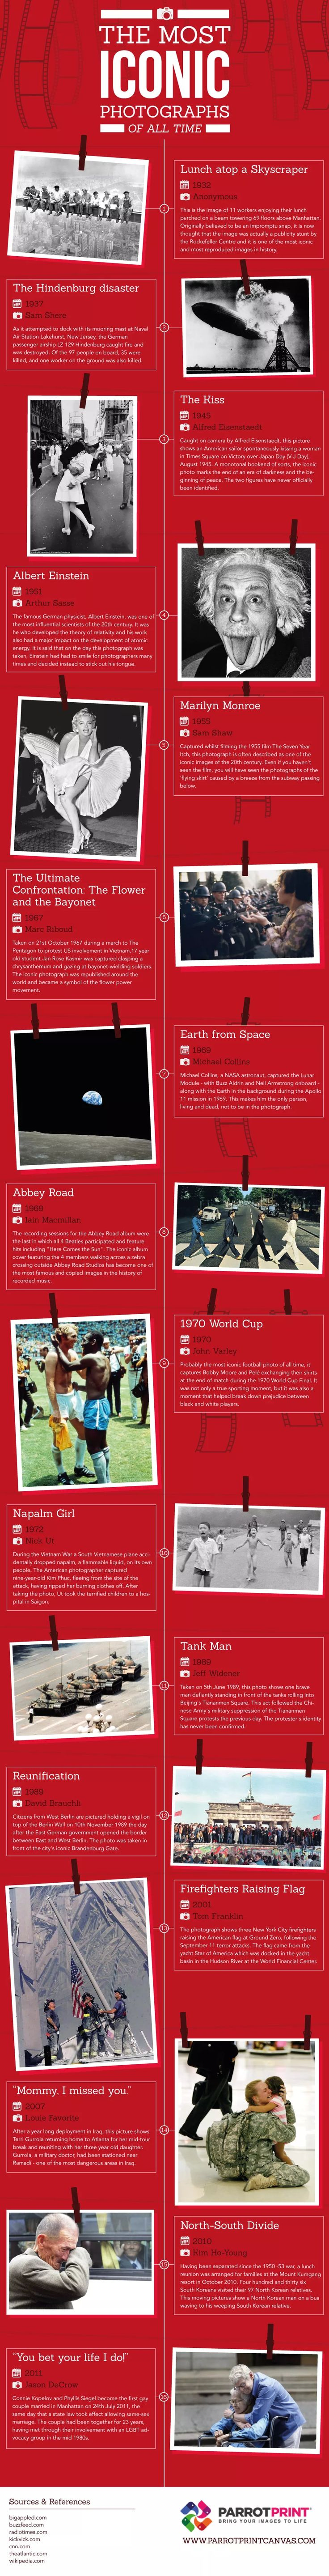 The Most Iconic Photographs of All Time #Infographic #History #Photography